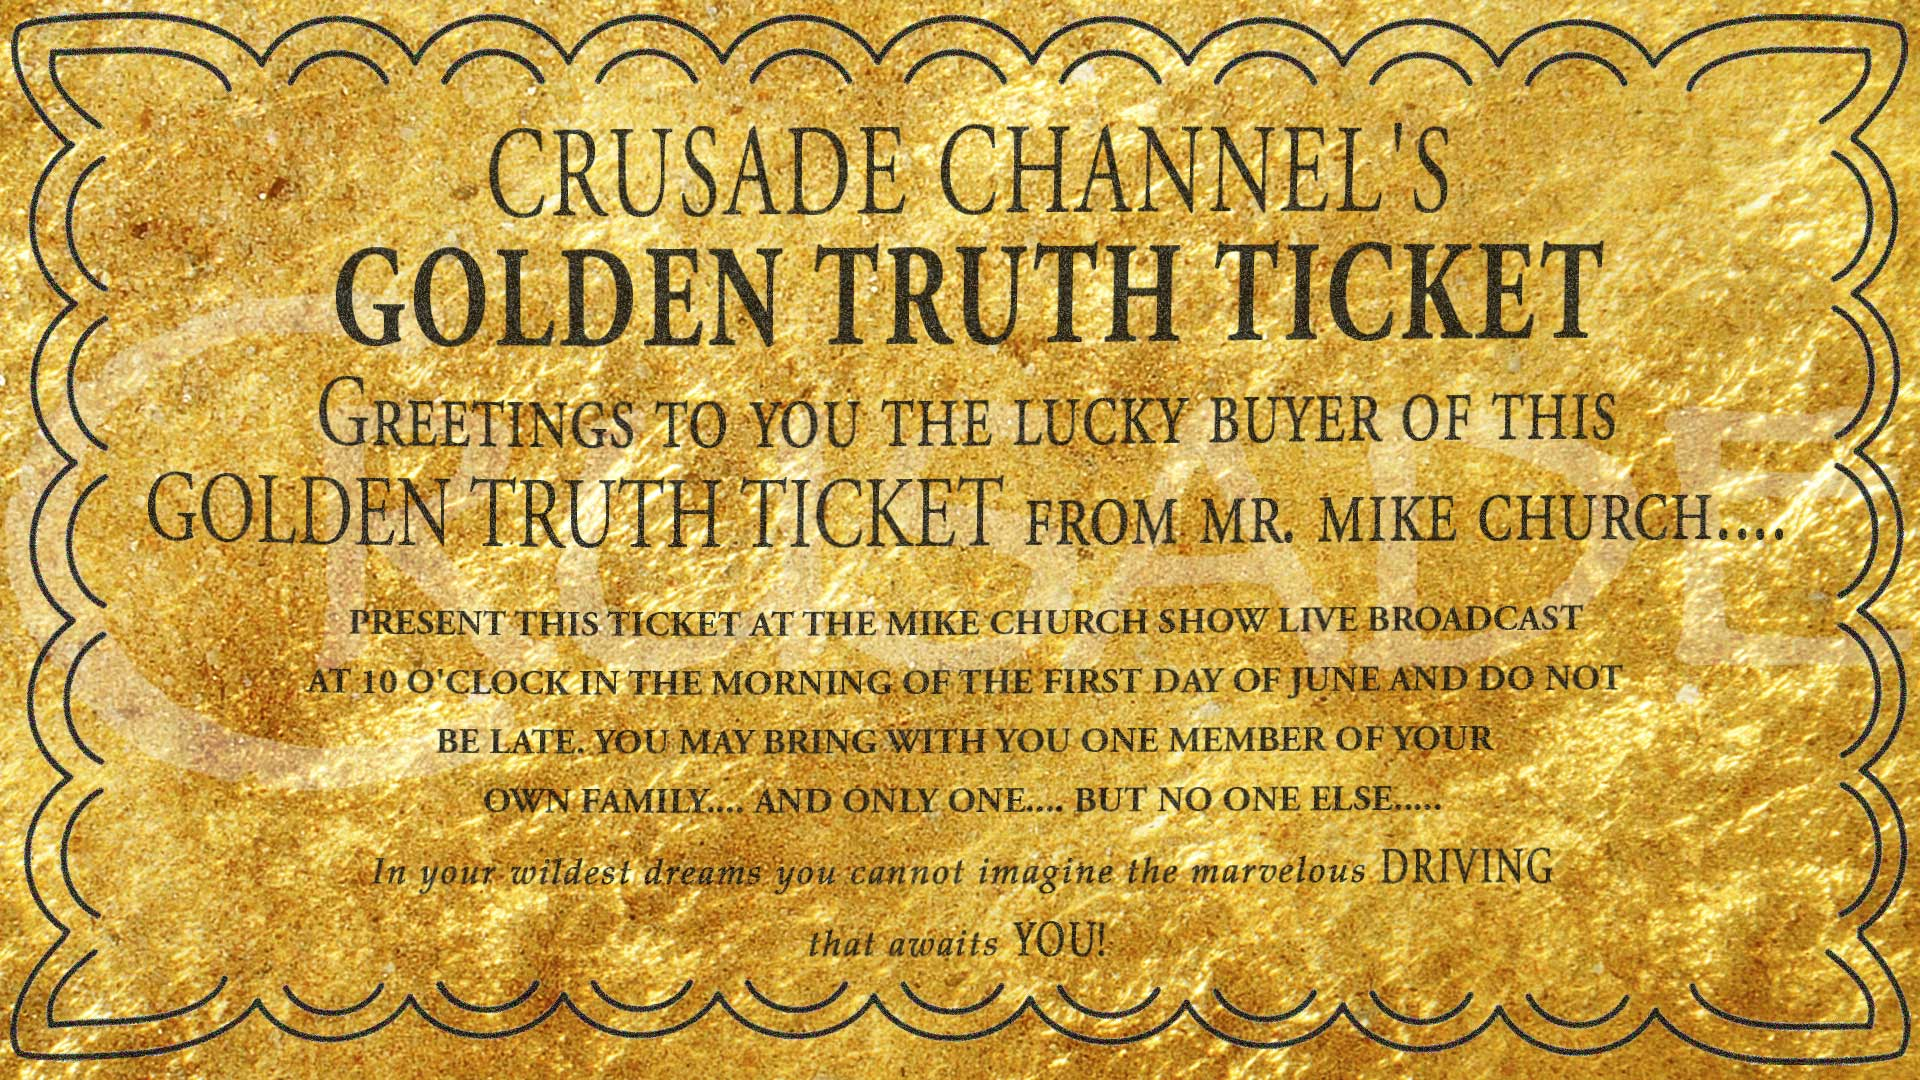 Announcing The 2nd Annual Great Golden Truth Ticket, Car Giveaway!